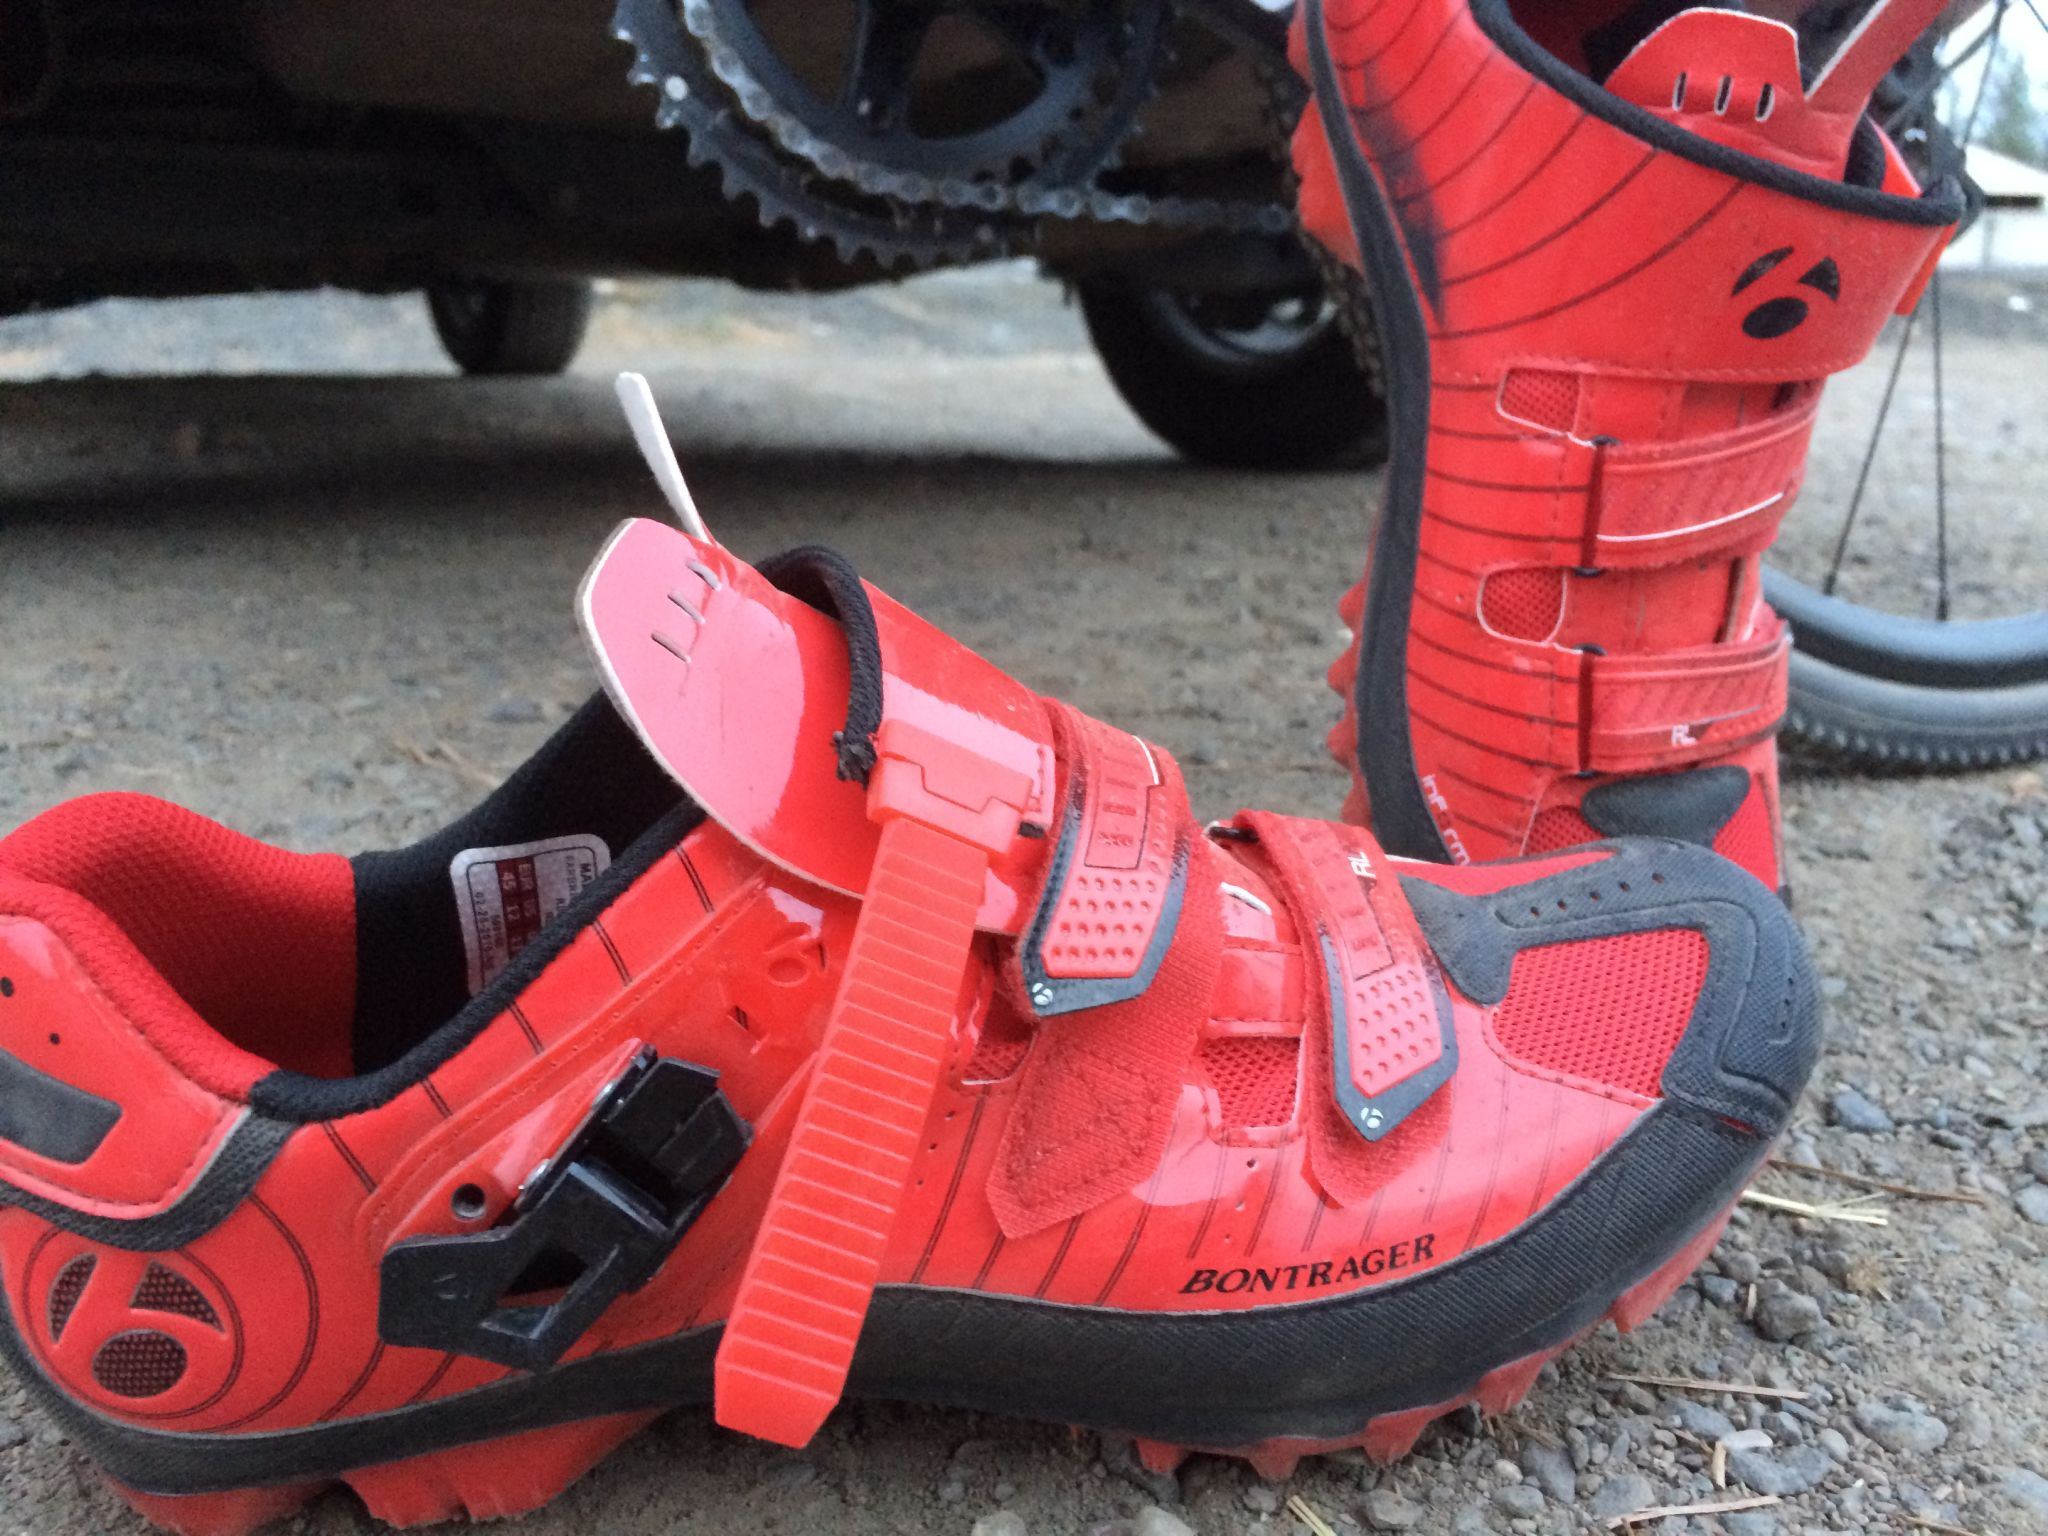 Review: Bontrager RL Shoes for MTB and